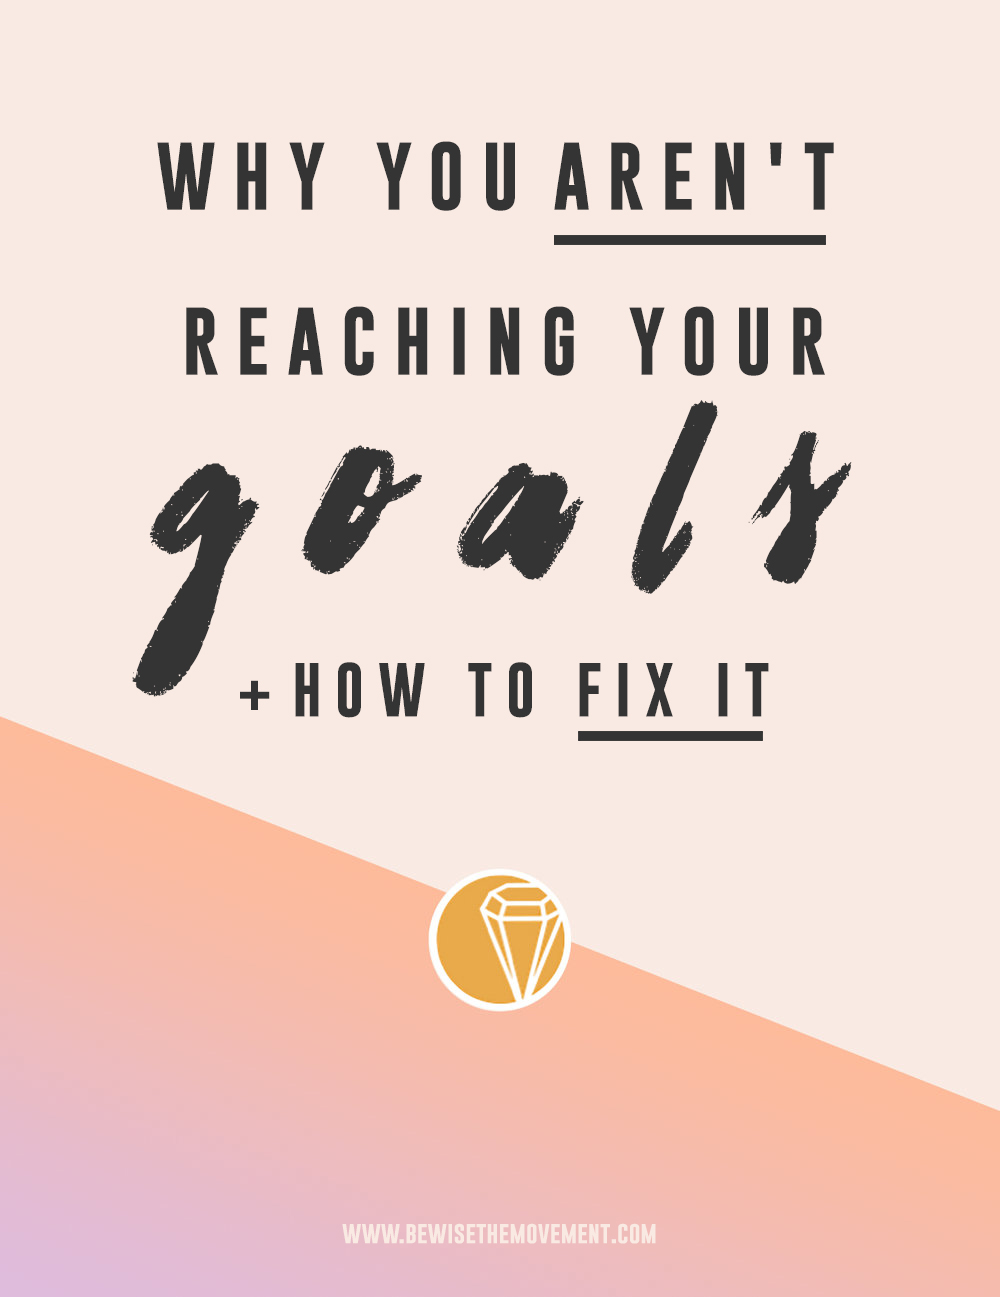 Why you aren't reaching your goals and how to fix it